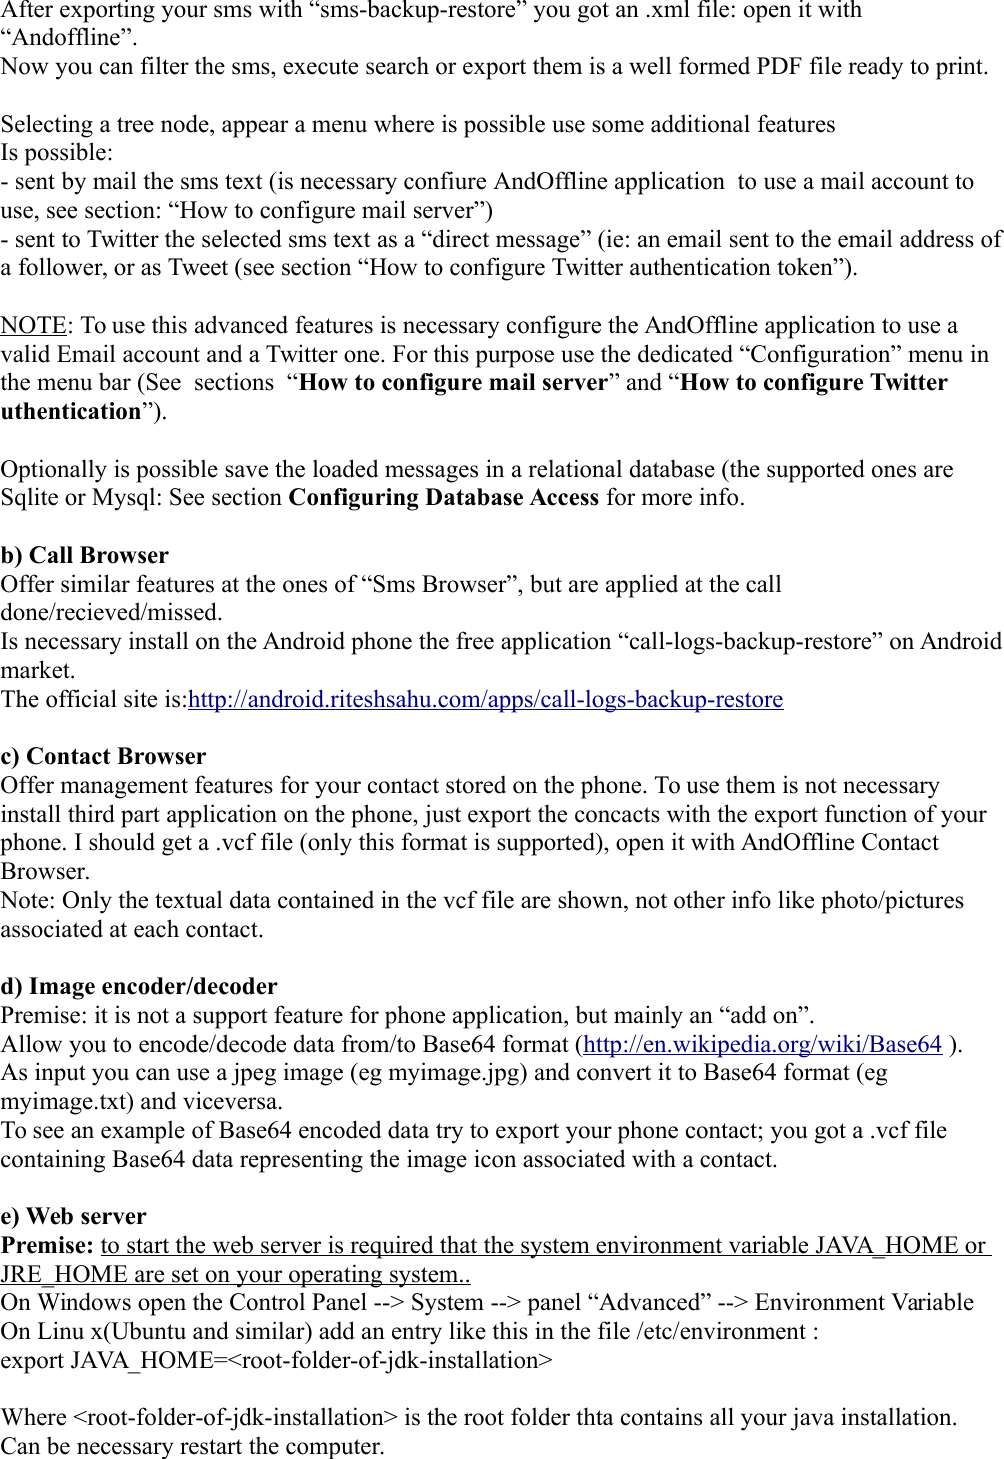 And Offline guide 1 0